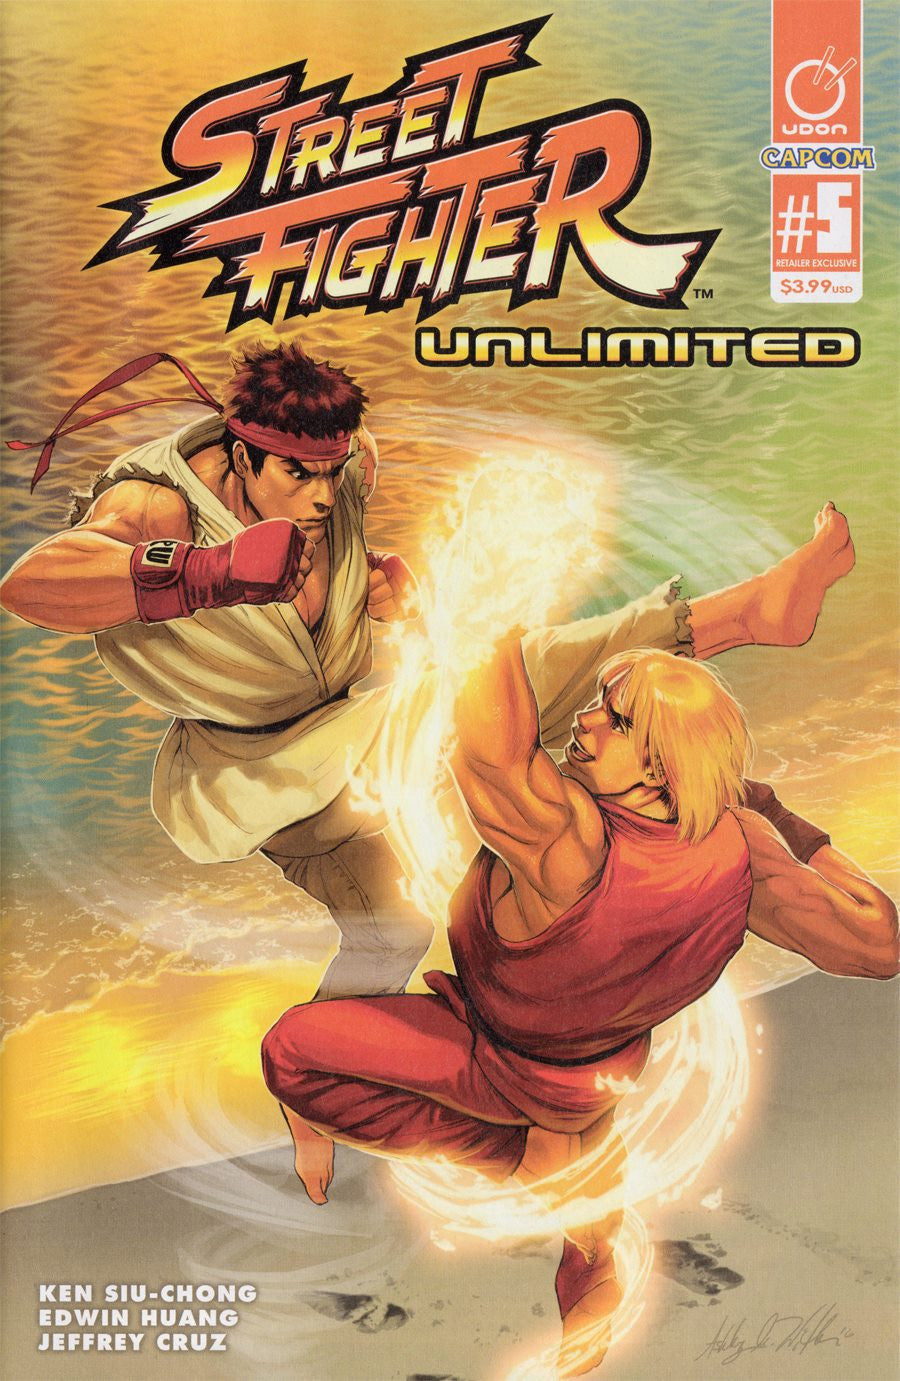 Street Fighter #5 AOD variant by Ashley Witter (color).